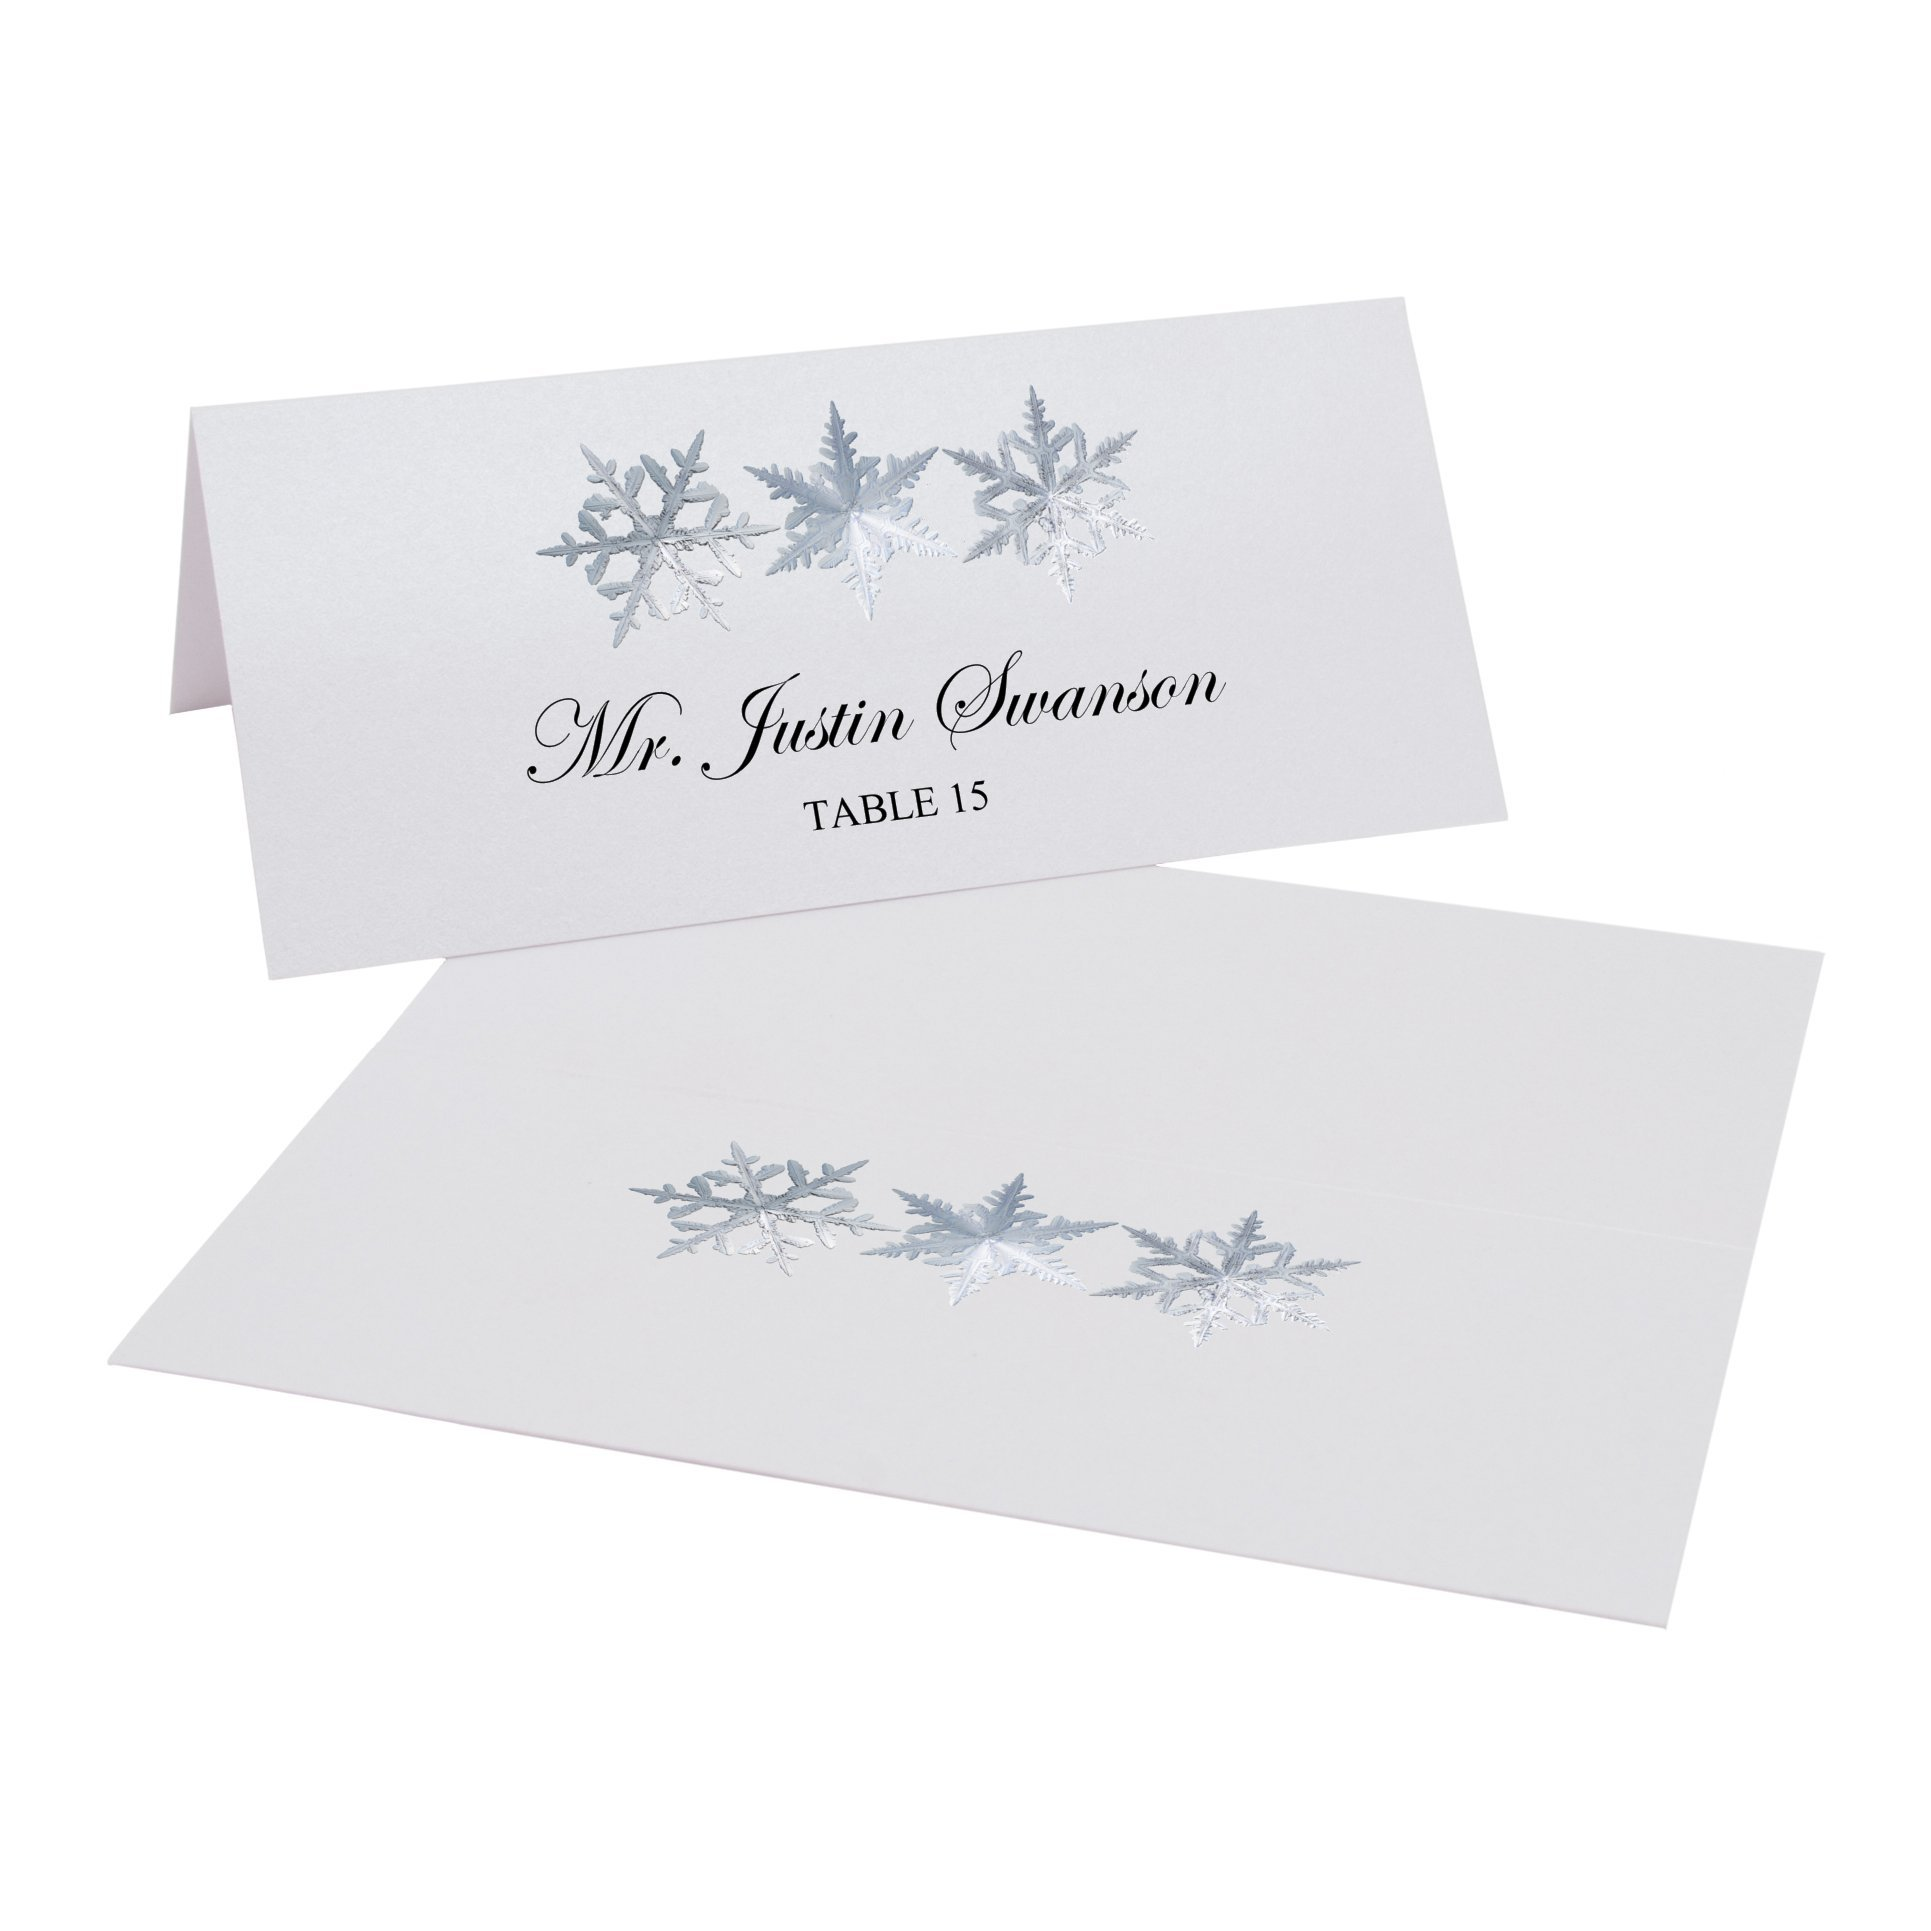 Snowflake Pattern Place Cards, Pearl White, Set of 375 by Documents and Designs